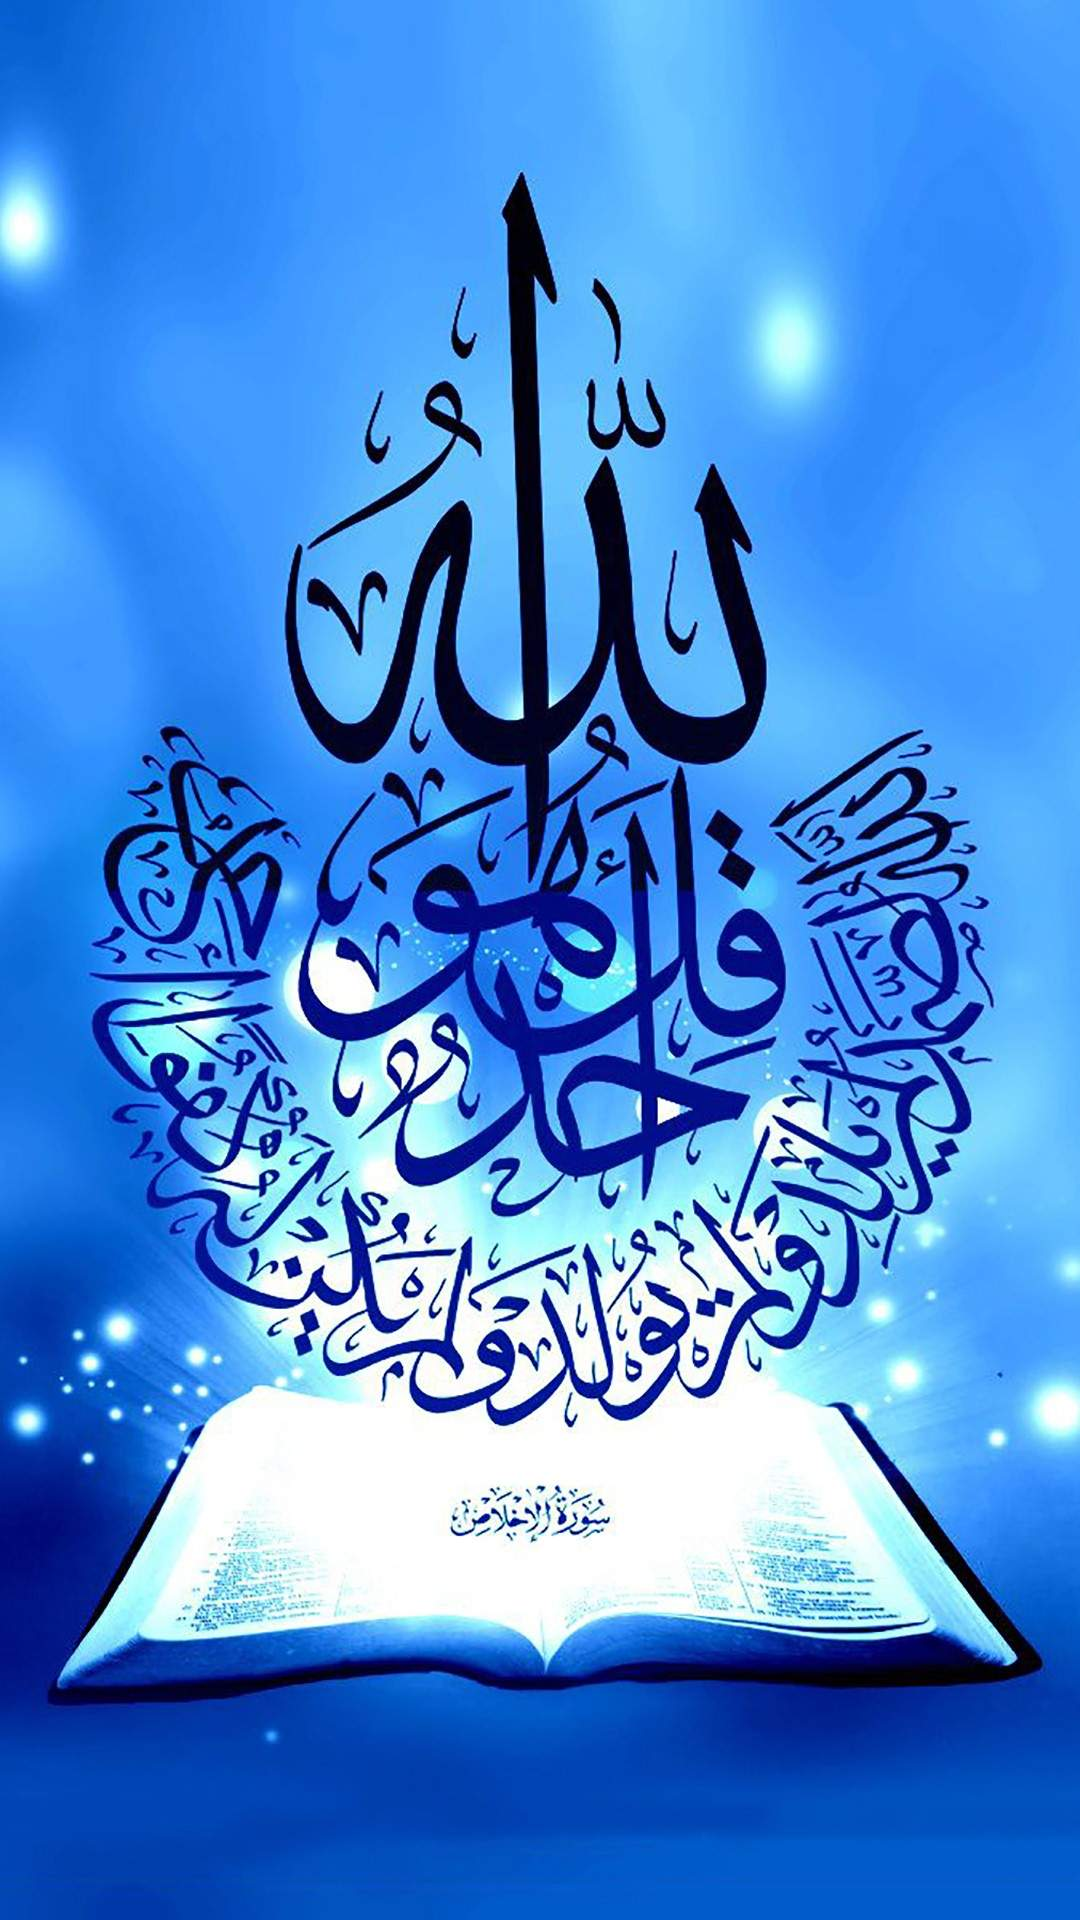 Wallpaper Islami Hd Keren Andro Surah Yasin Calligraphy